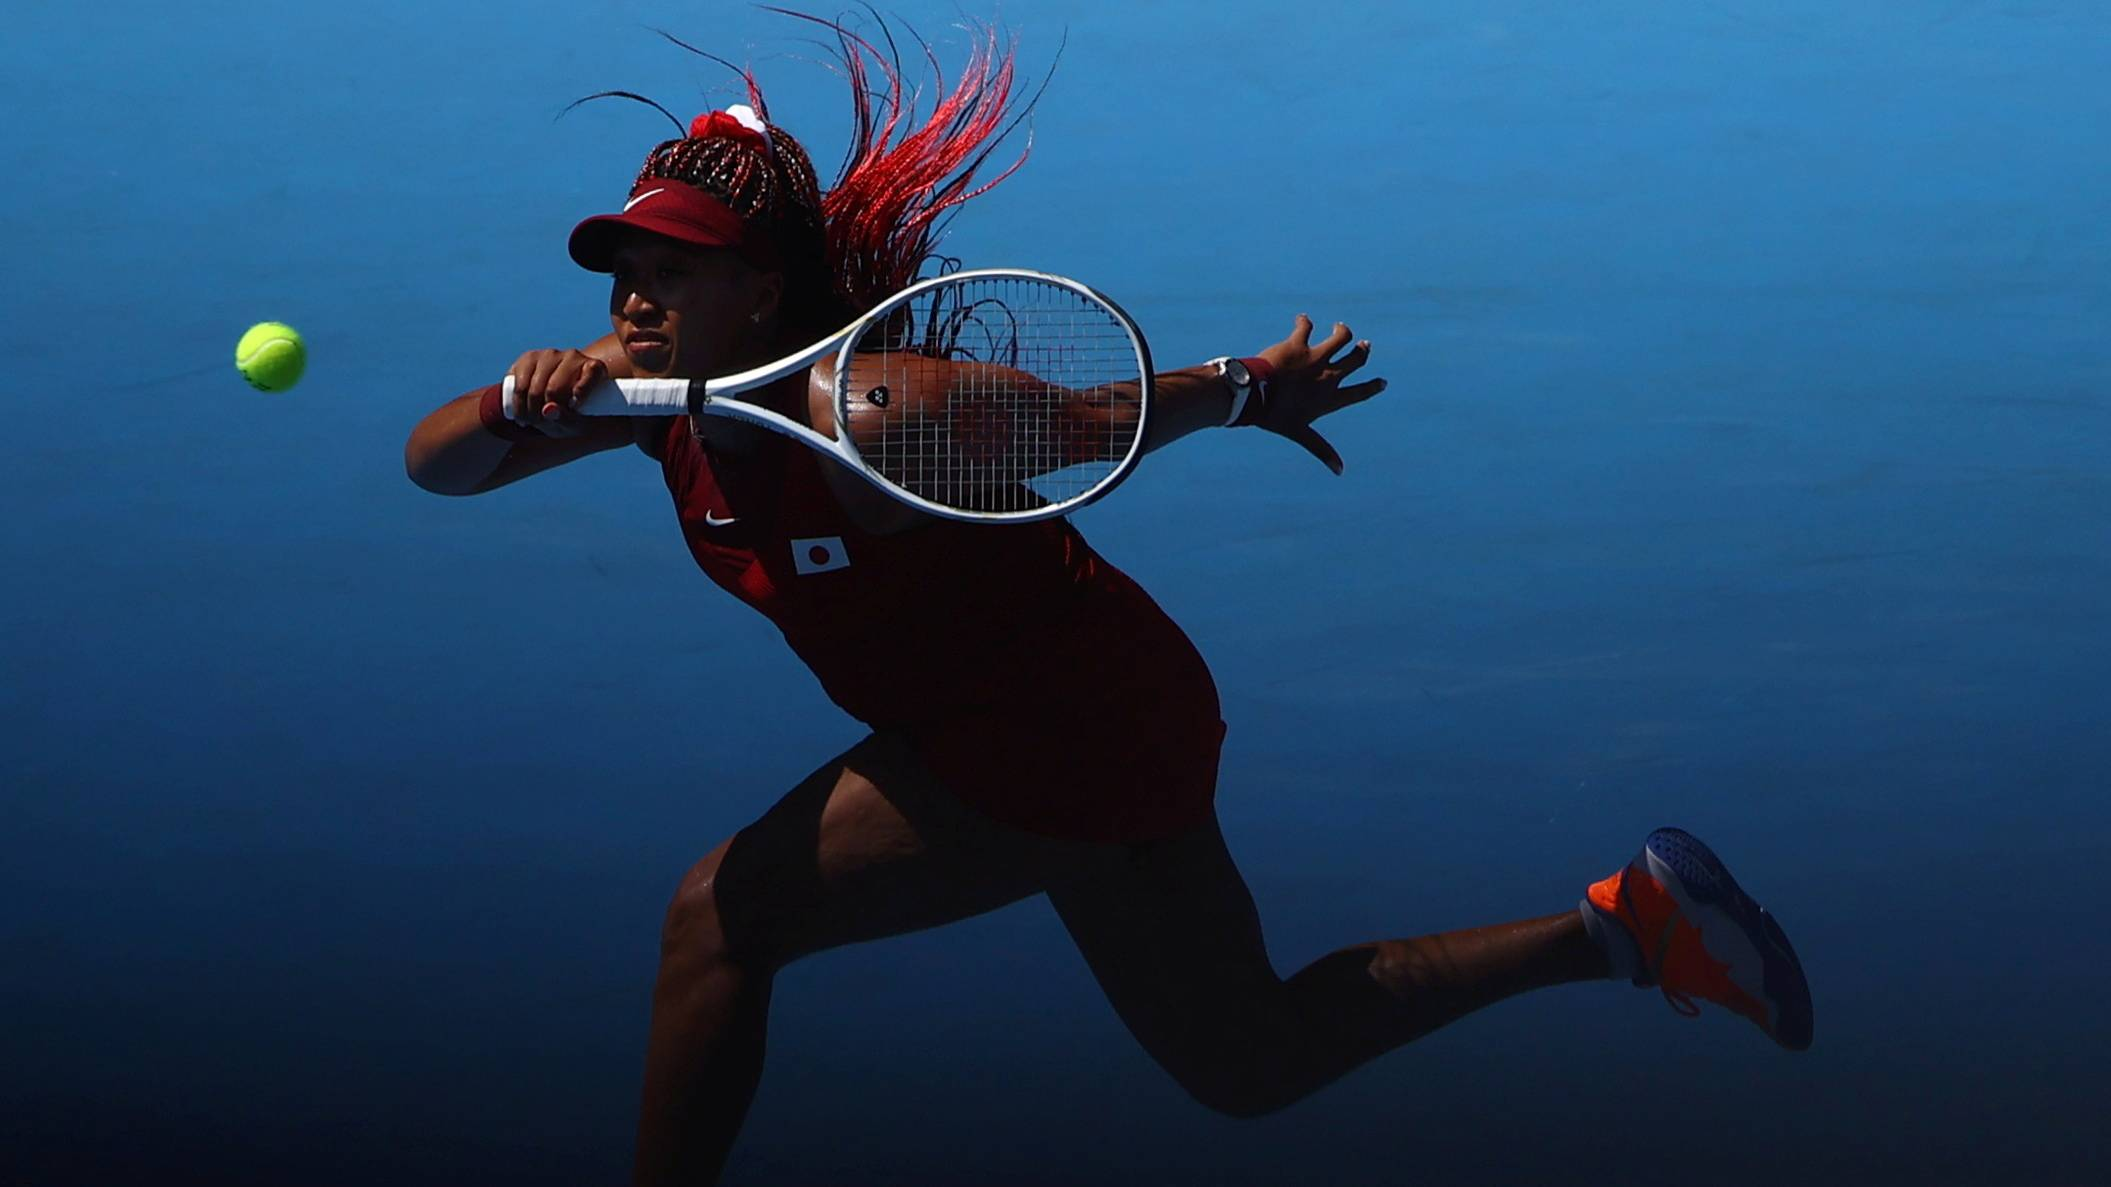 Naomi Osaka in action during her first-round match against Zheng Saisai of China. | REUTERS